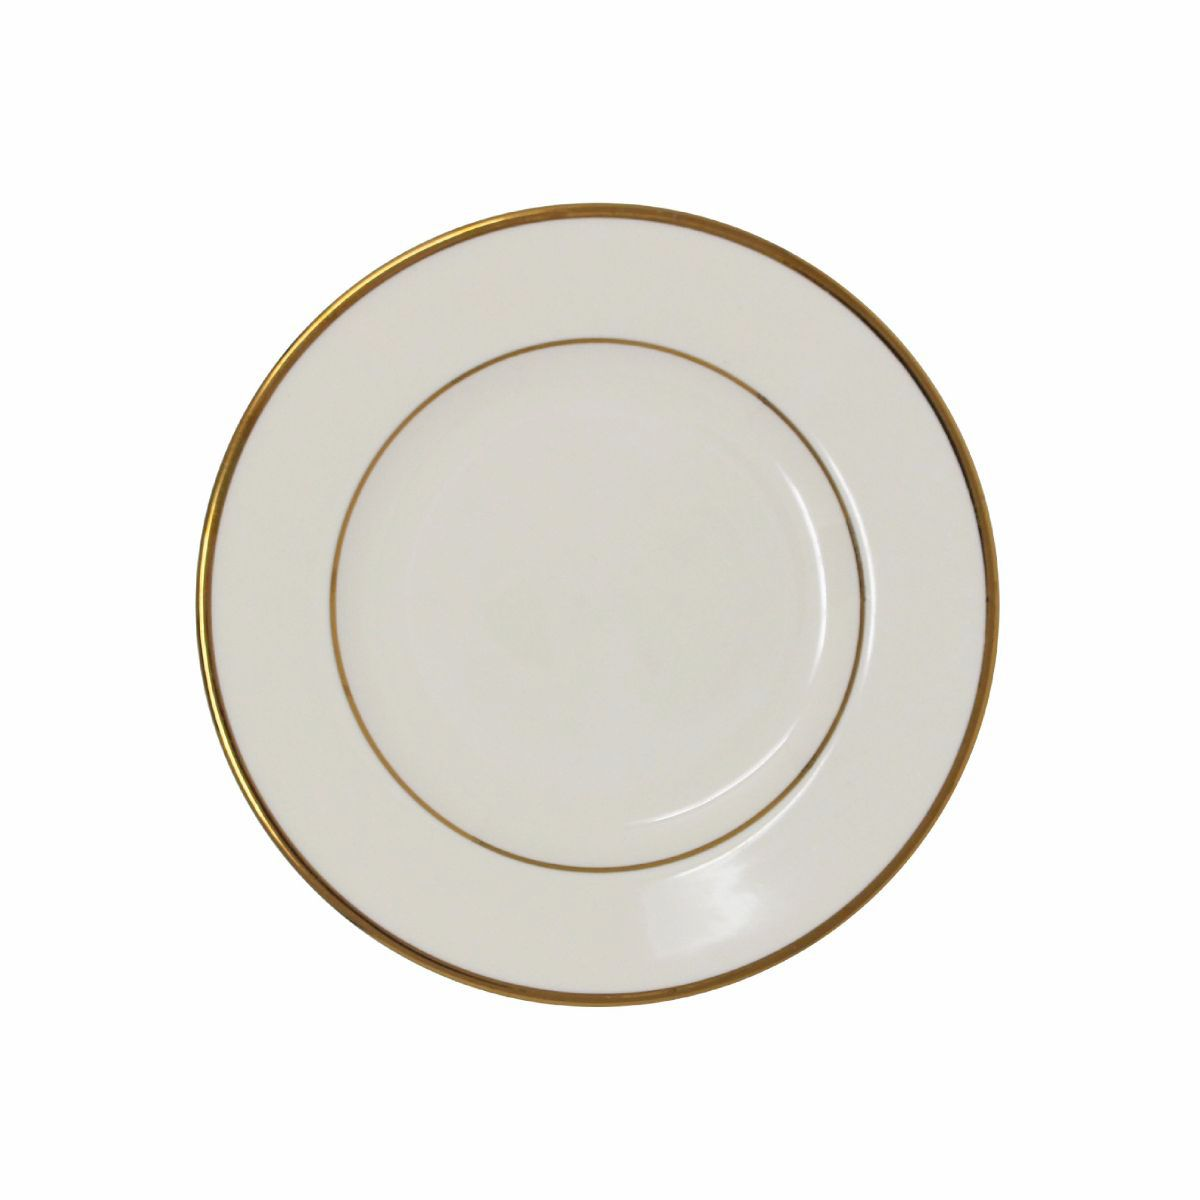 Bread & Butter Plate Beige With Gold Band 6""